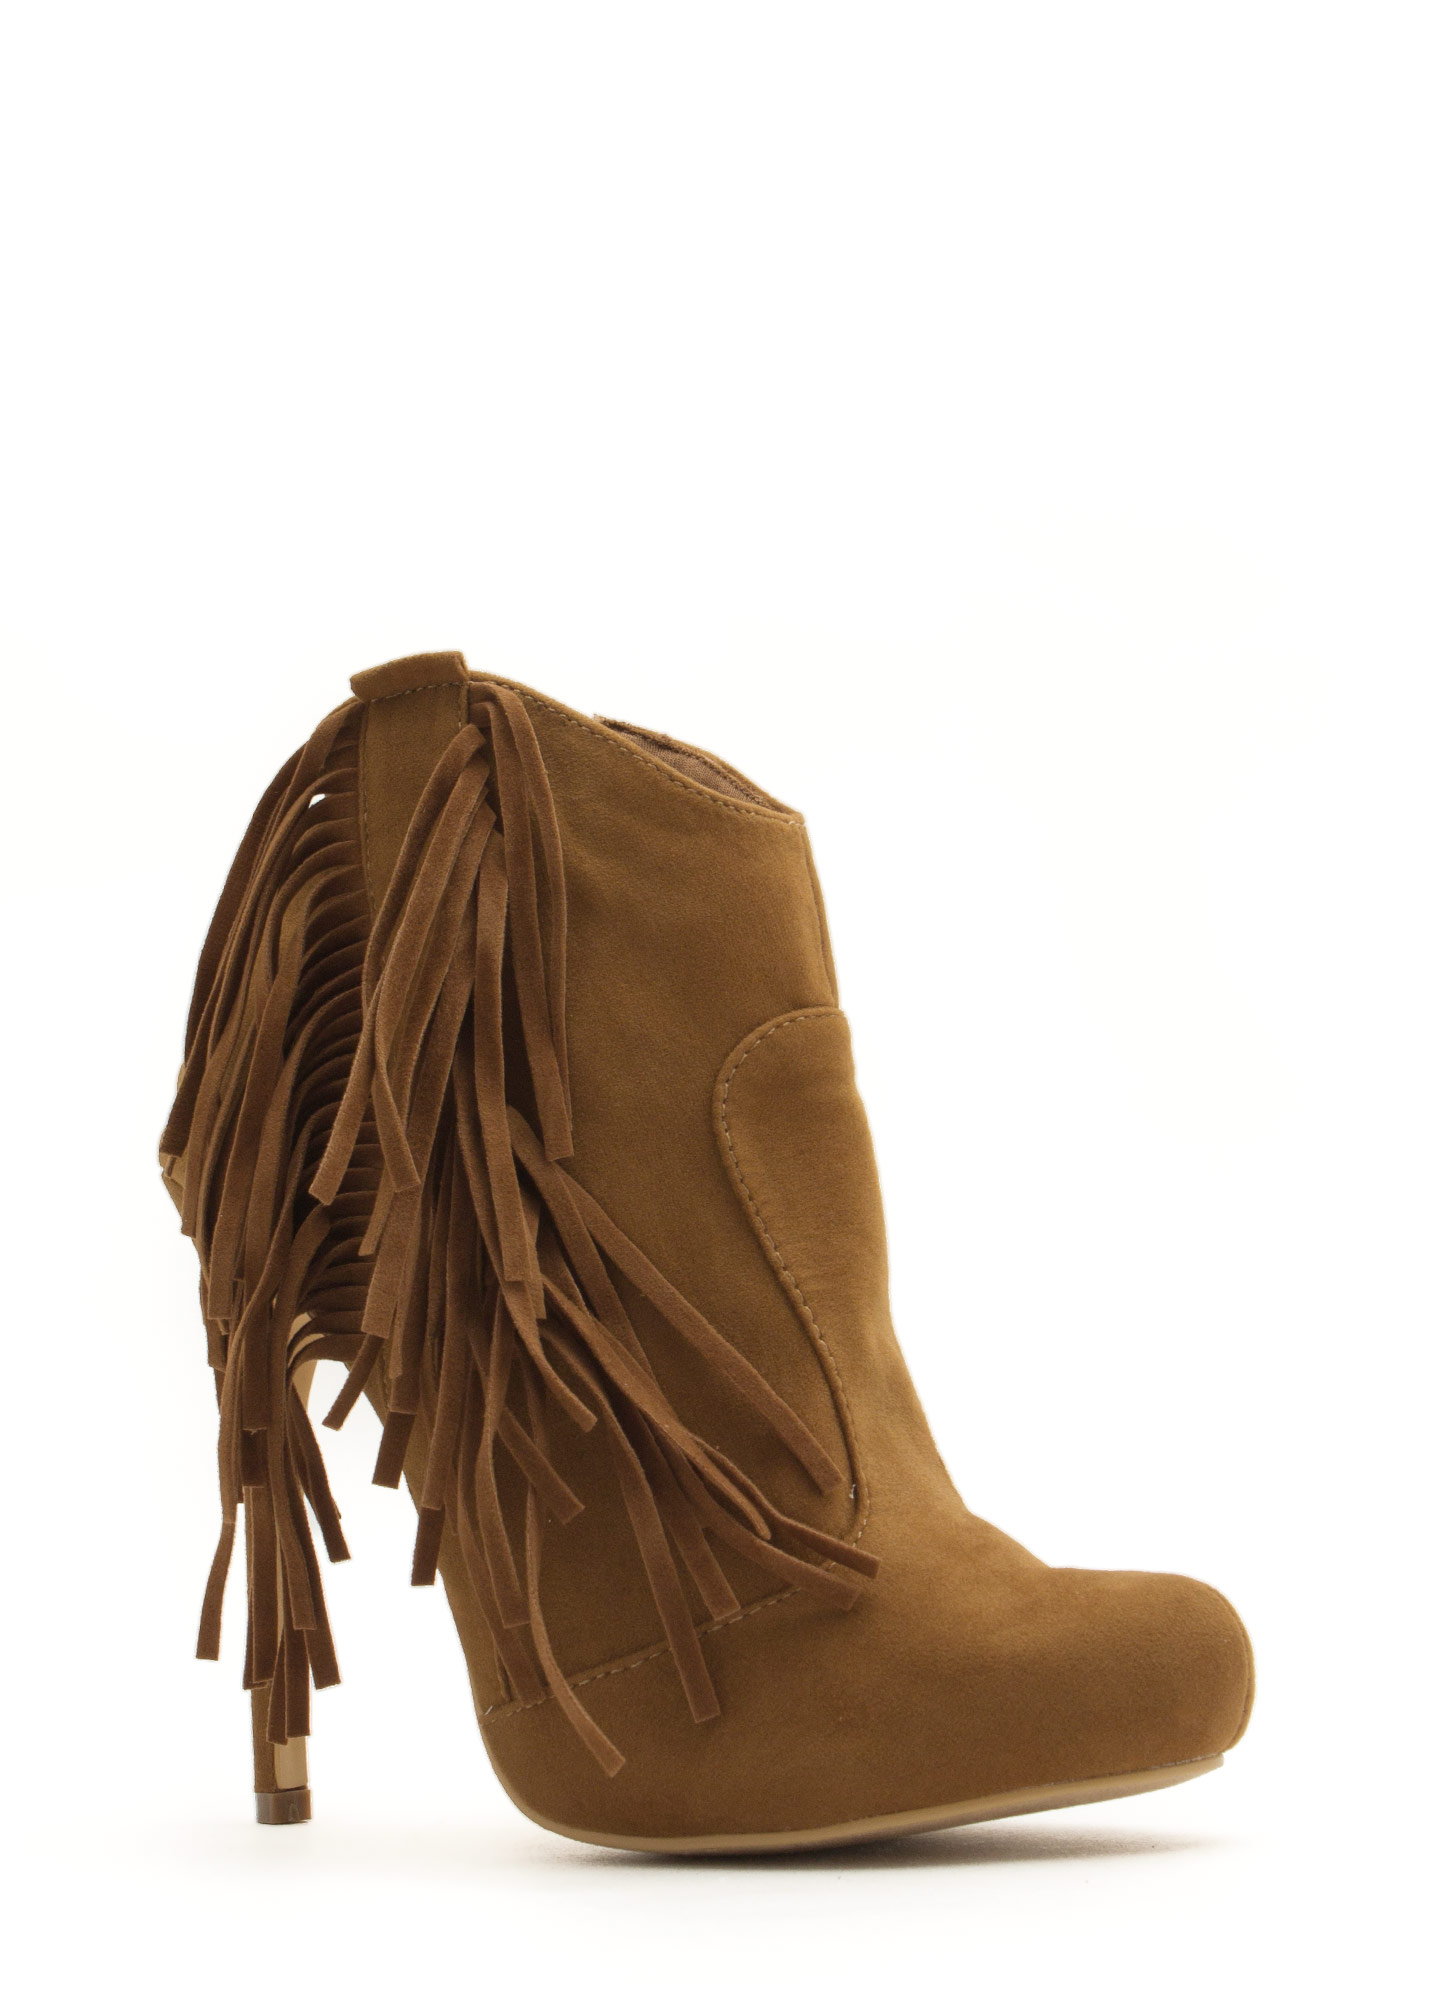 Fringe With Benefits Stiletto Booties TAN